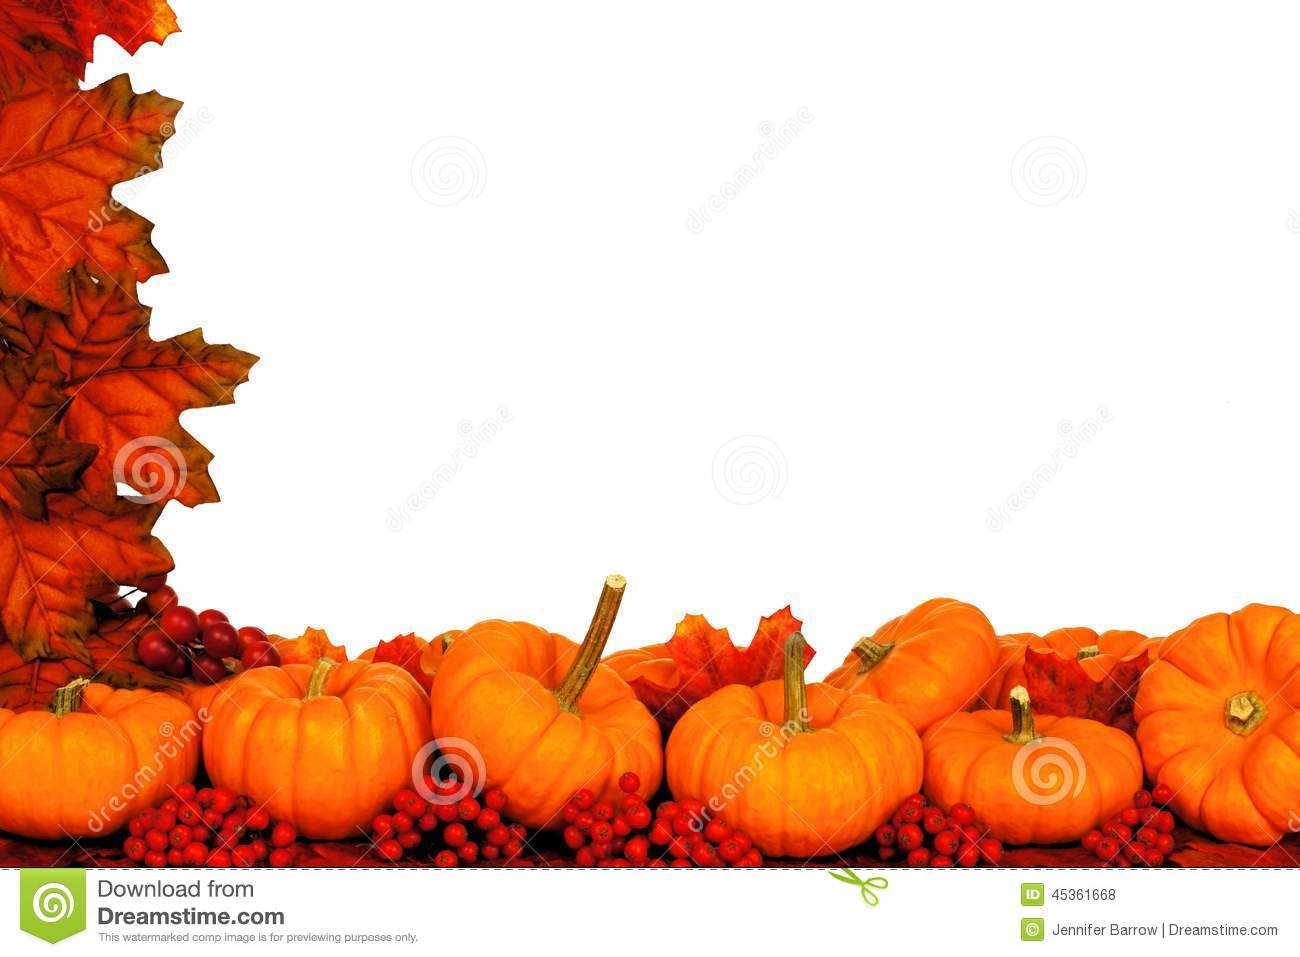 Autumn Corner Border Stock Photo - Image: 45361668